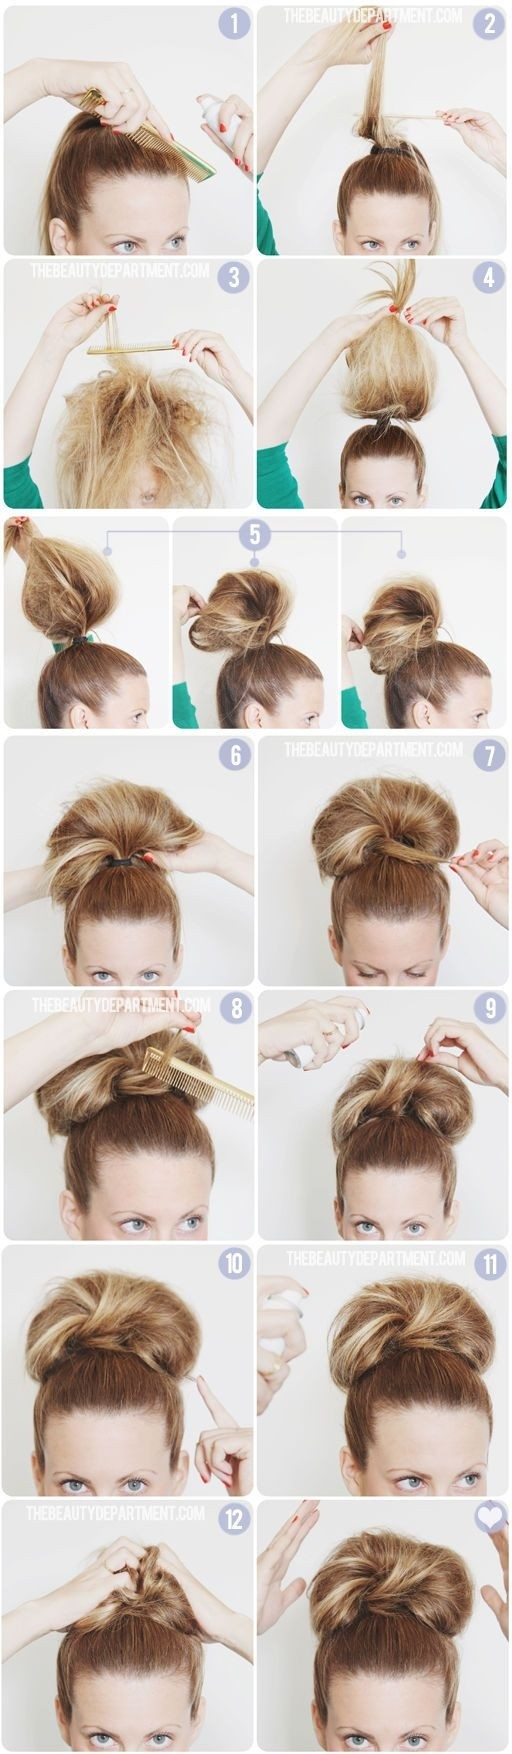 Giant-Bun-Tutorial-Easy-High-Bun-Updos